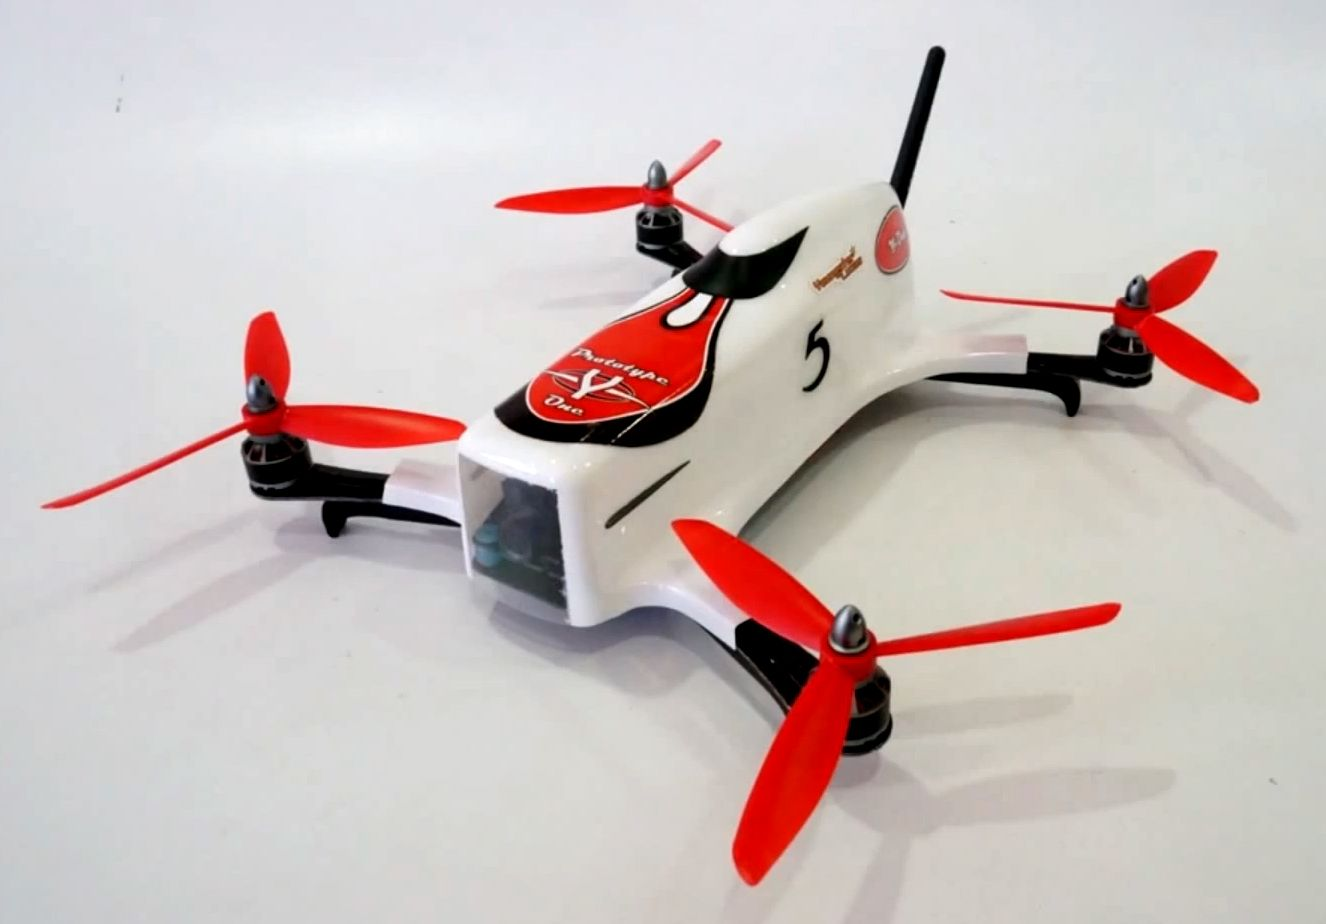 XFly X250 Racer canopy & XFly X250 Racer canopy | RC and FPV | Pinterest | Canopy